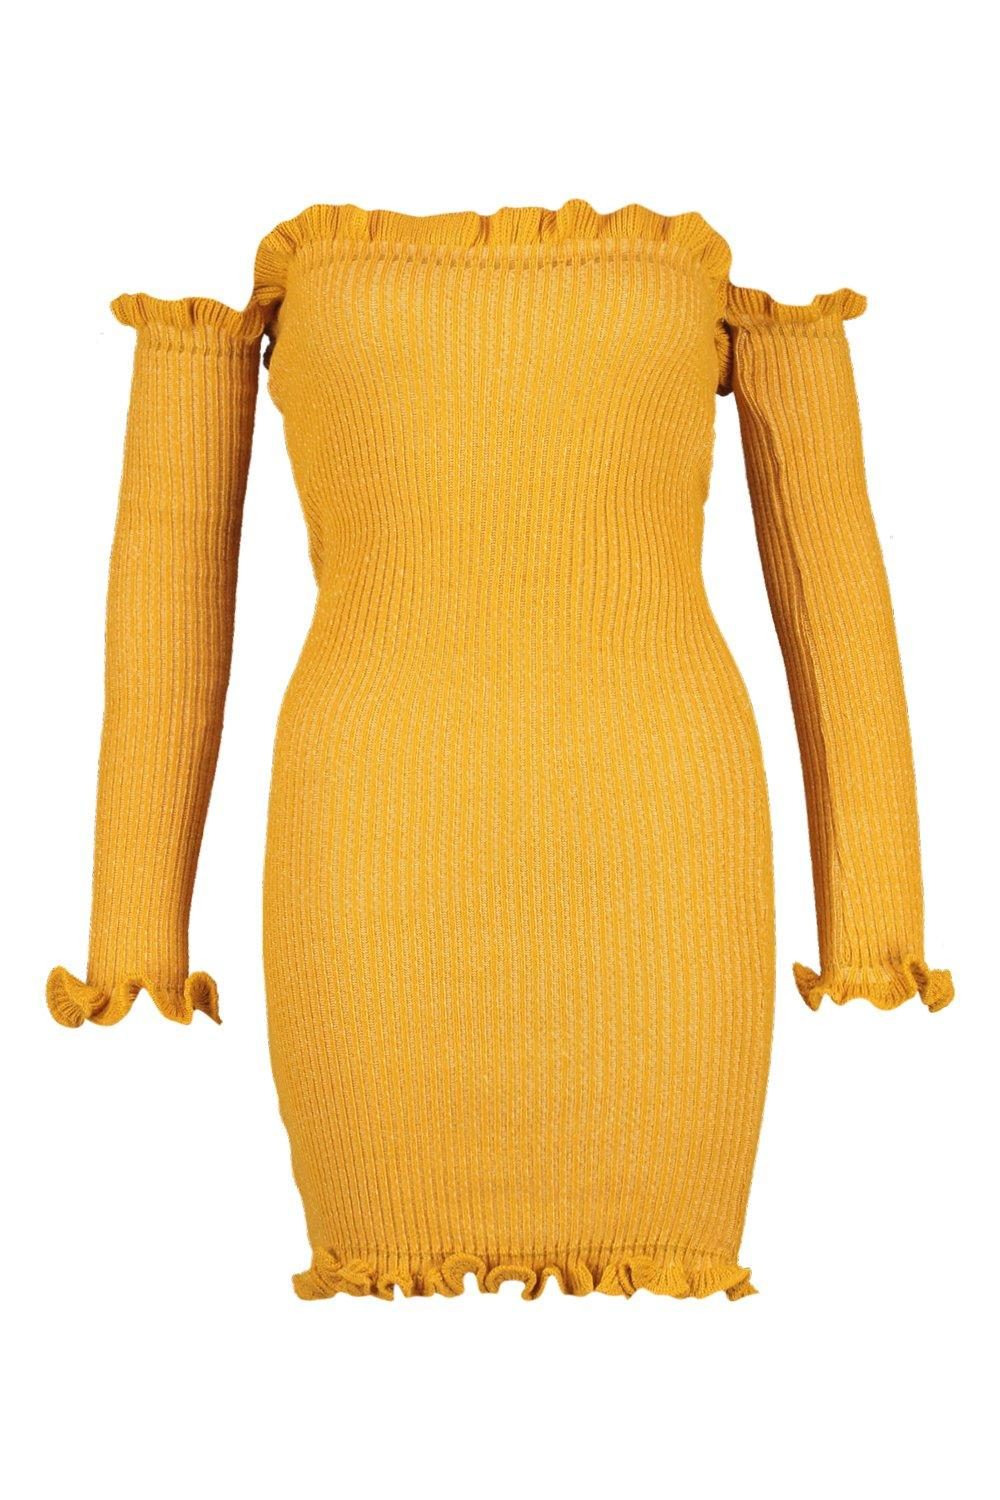 Ruffle Knitted Rib Mini Detail Dress mustard qw75x51zn